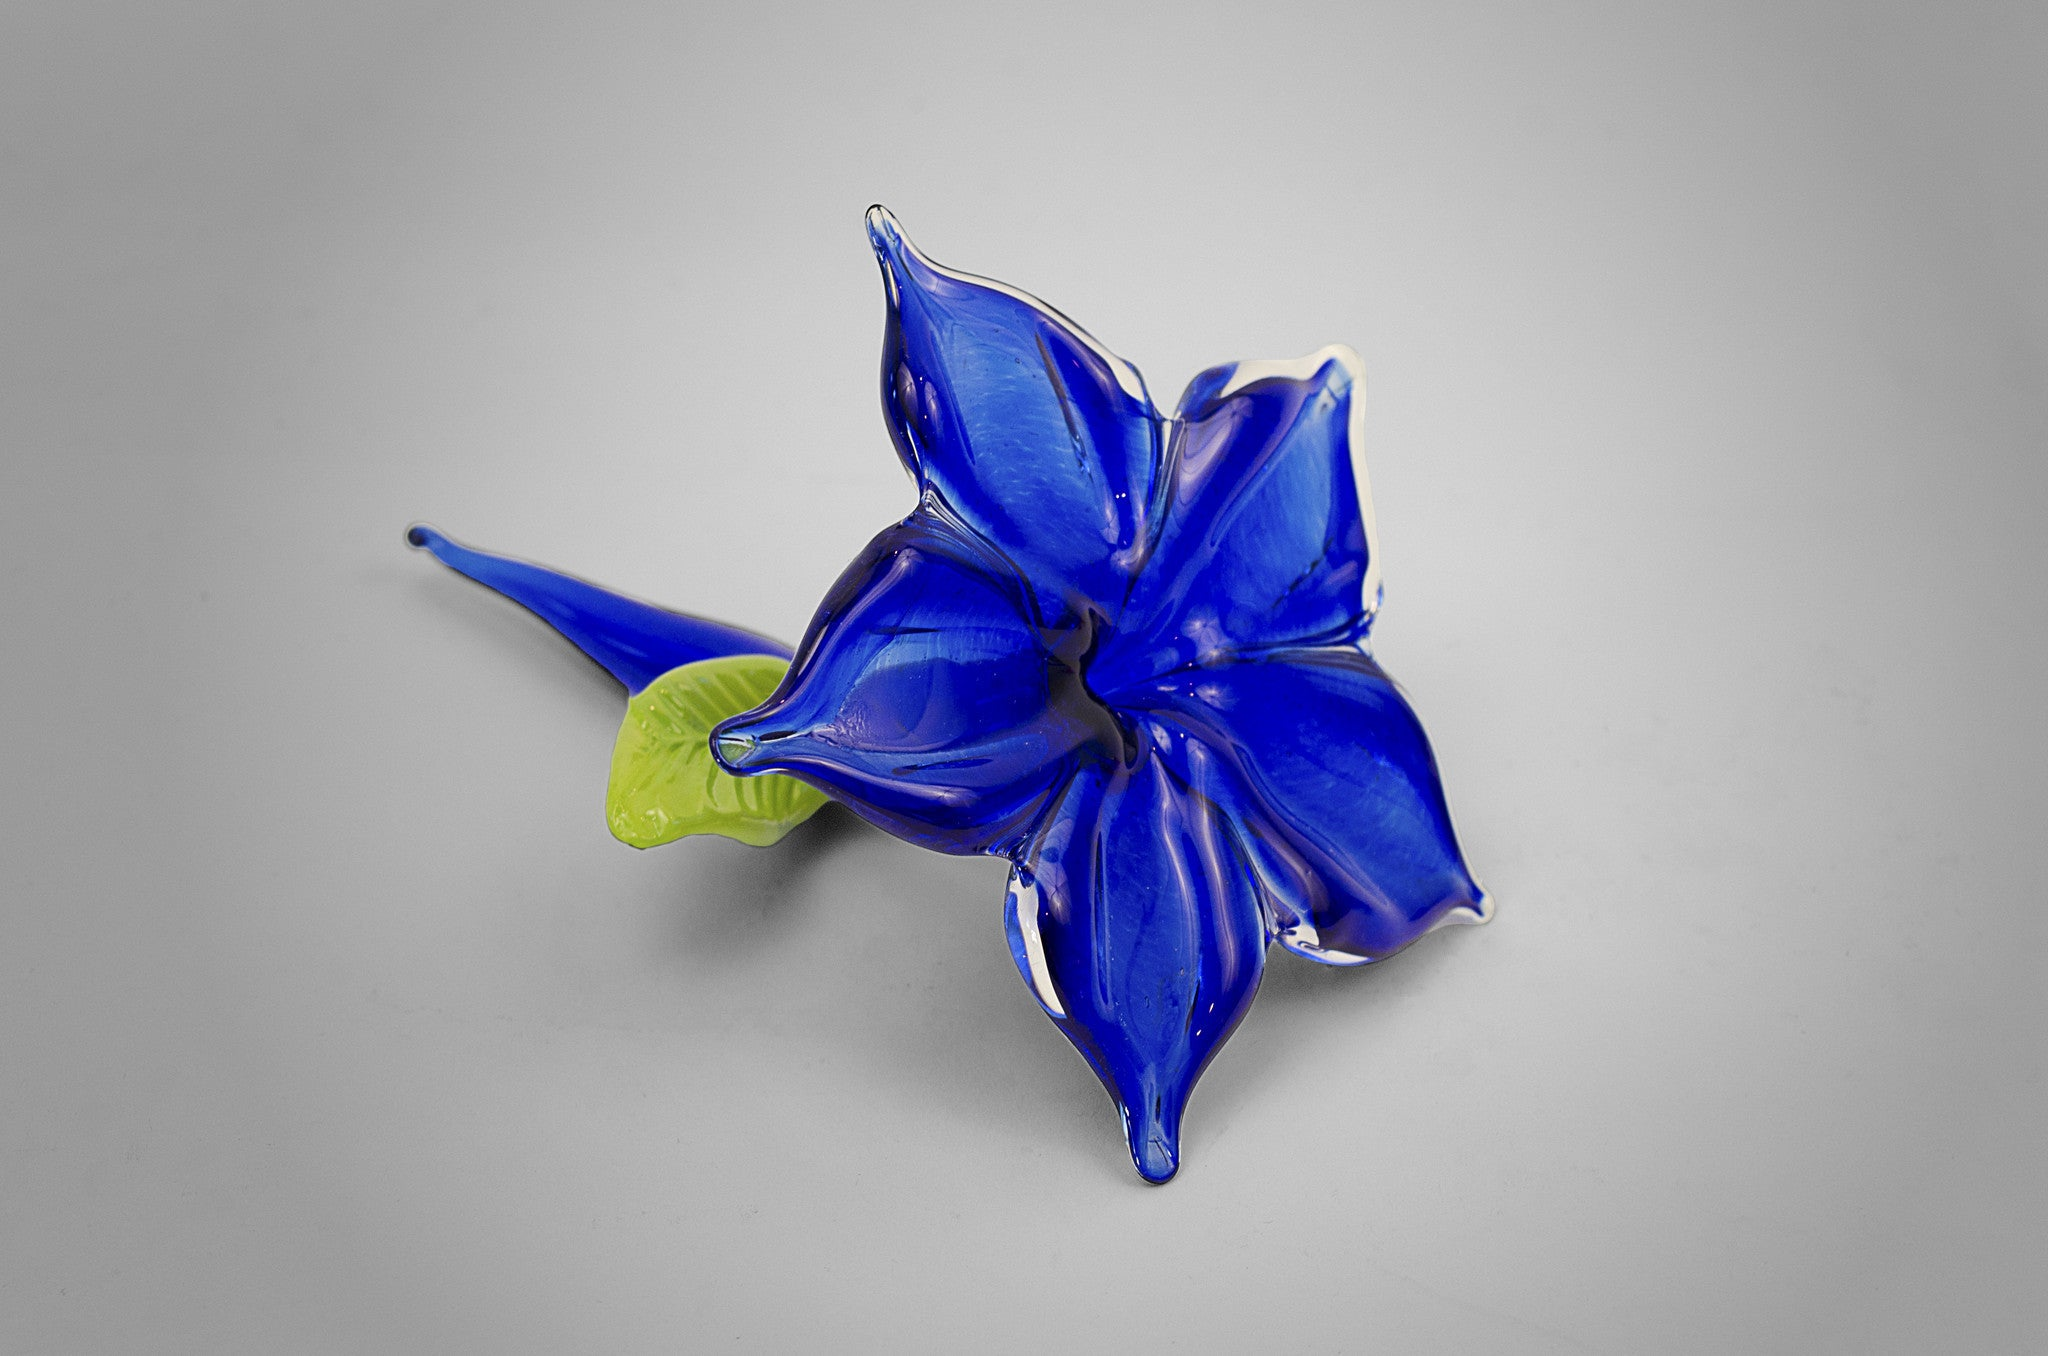 Small unique handmade glass accent flower in cobalt blue color